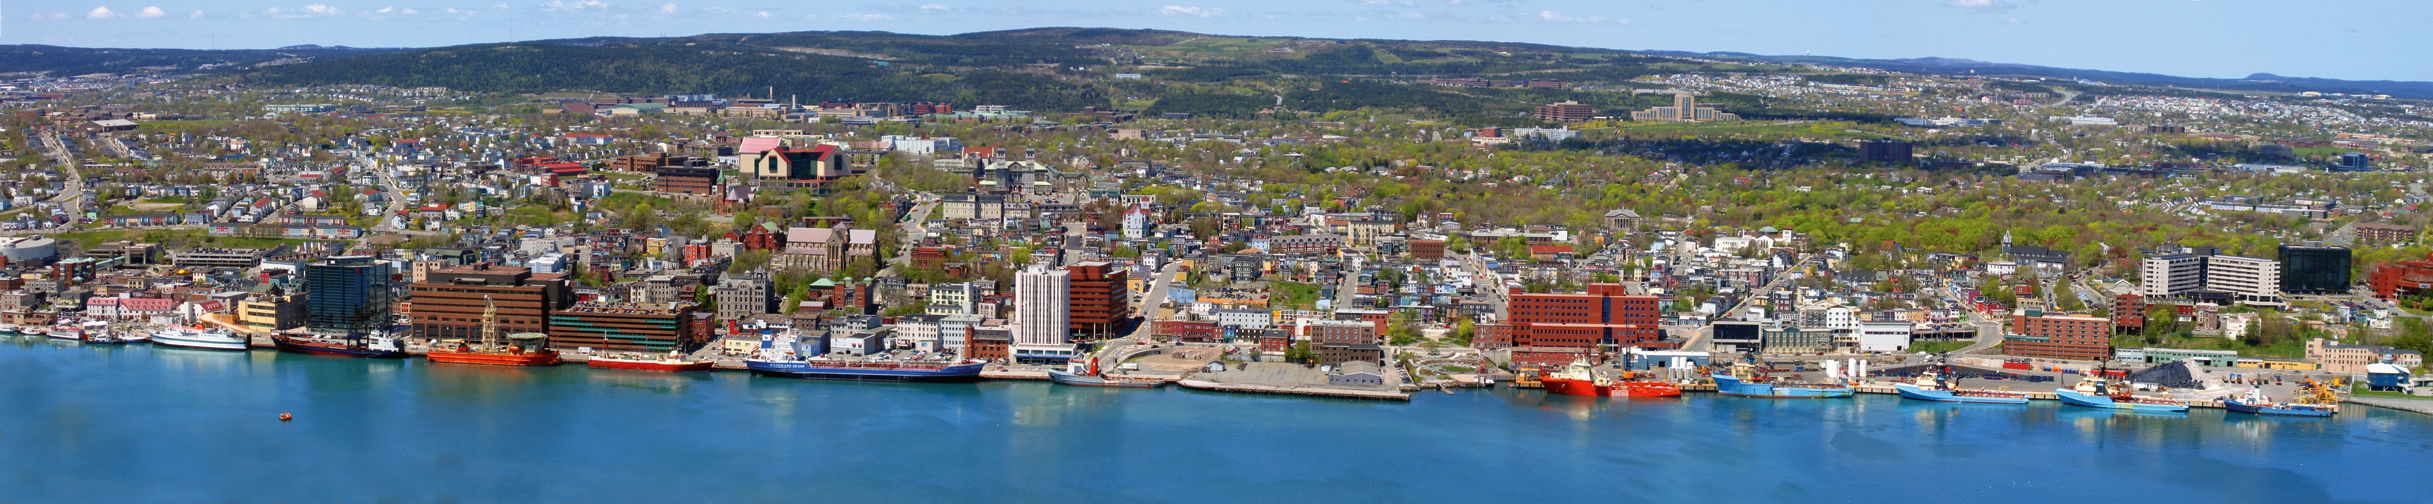 JustChange St. John's launches to accelerate great ideas for Newfoundland